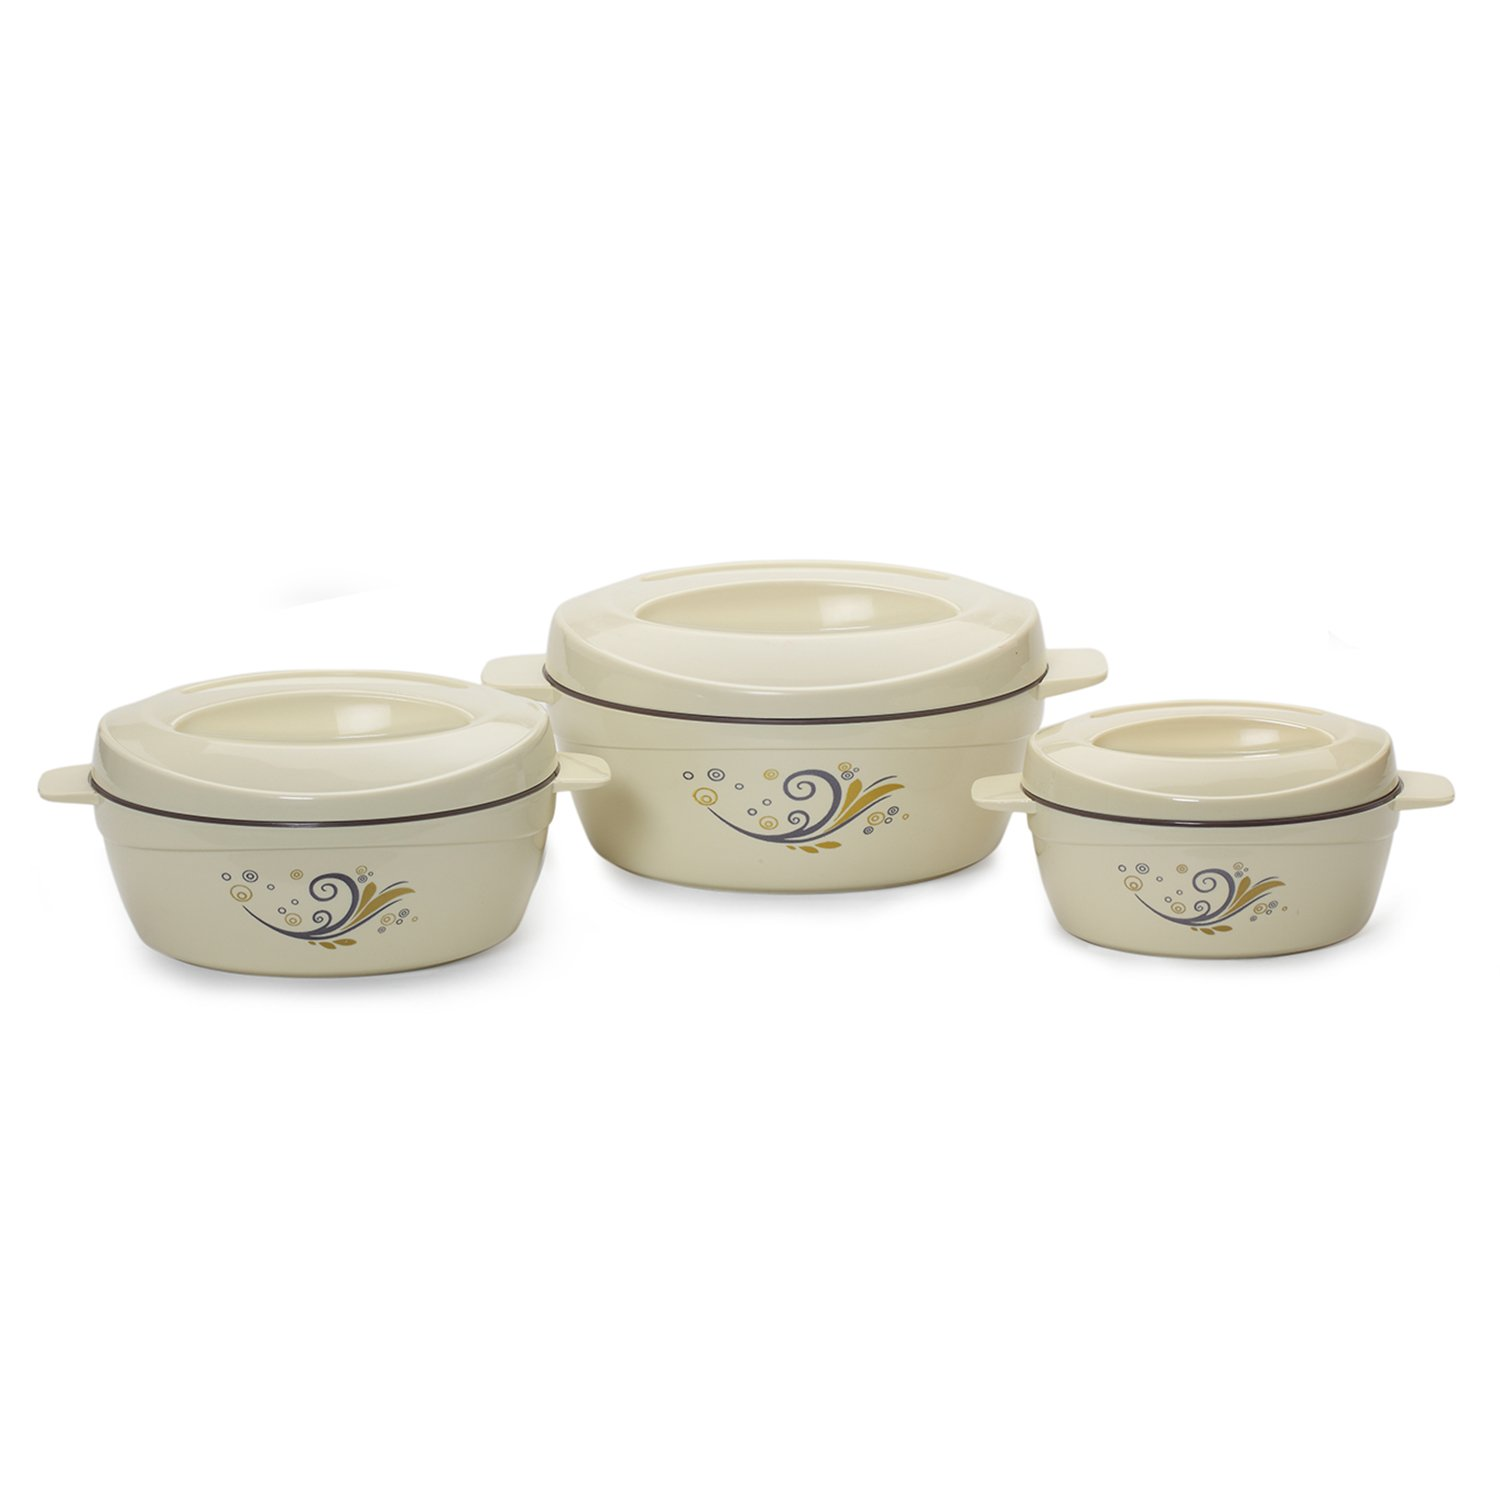 Cello Cuisine Insulated Casserole Gift Set, 3-Pieces, Ivory